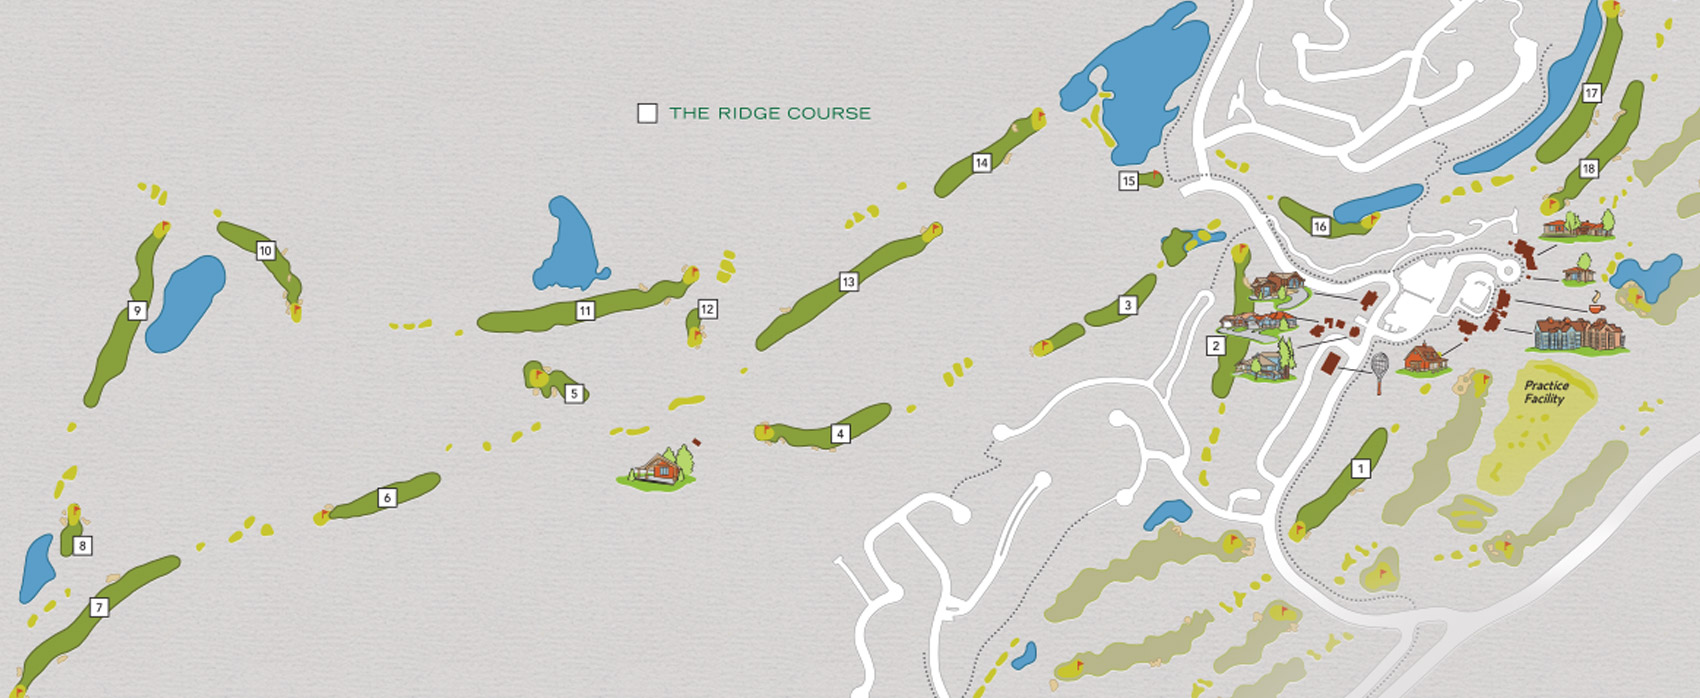 The Ridge Course